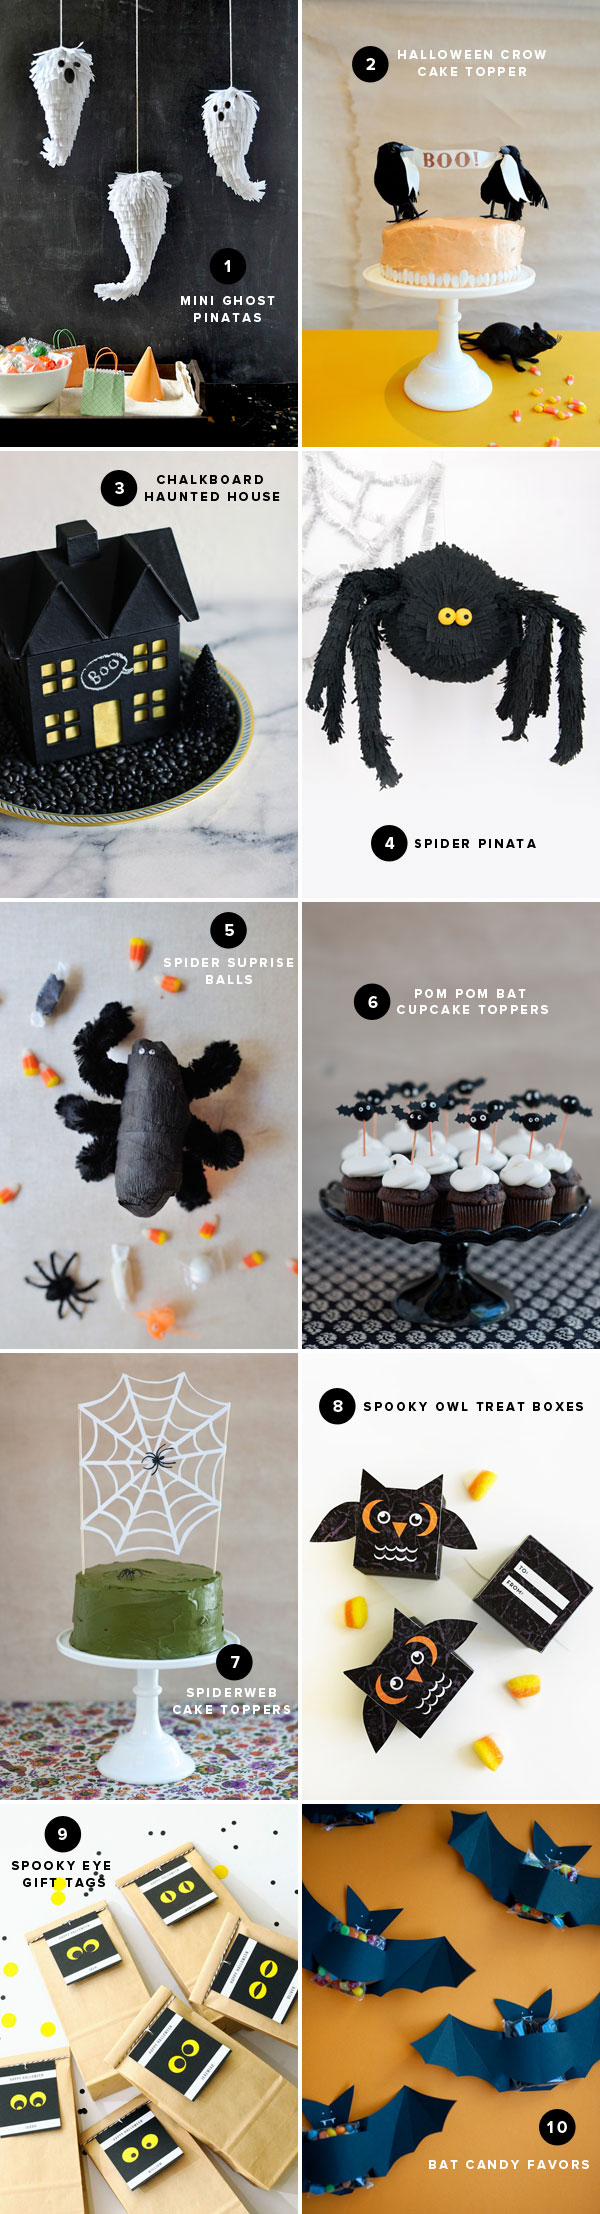 10 Halloween DIY Ideas